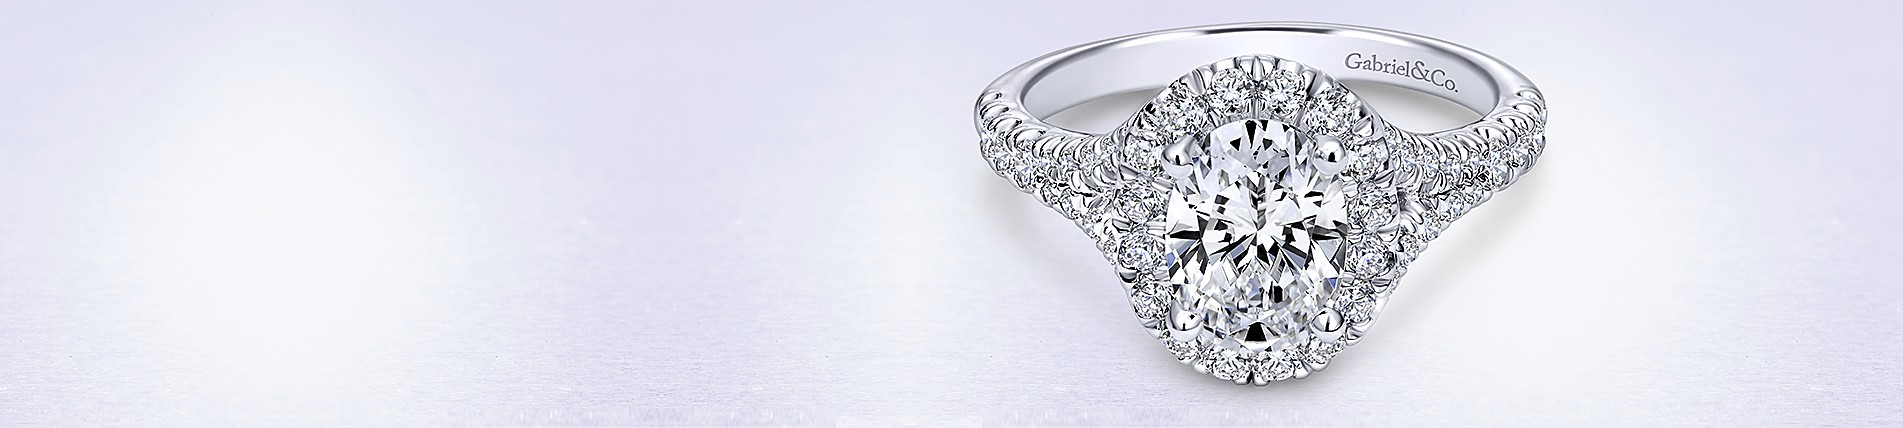 statement oval silver diamond cut rings sterling promise media ring ct bridal wedding engagement simulant